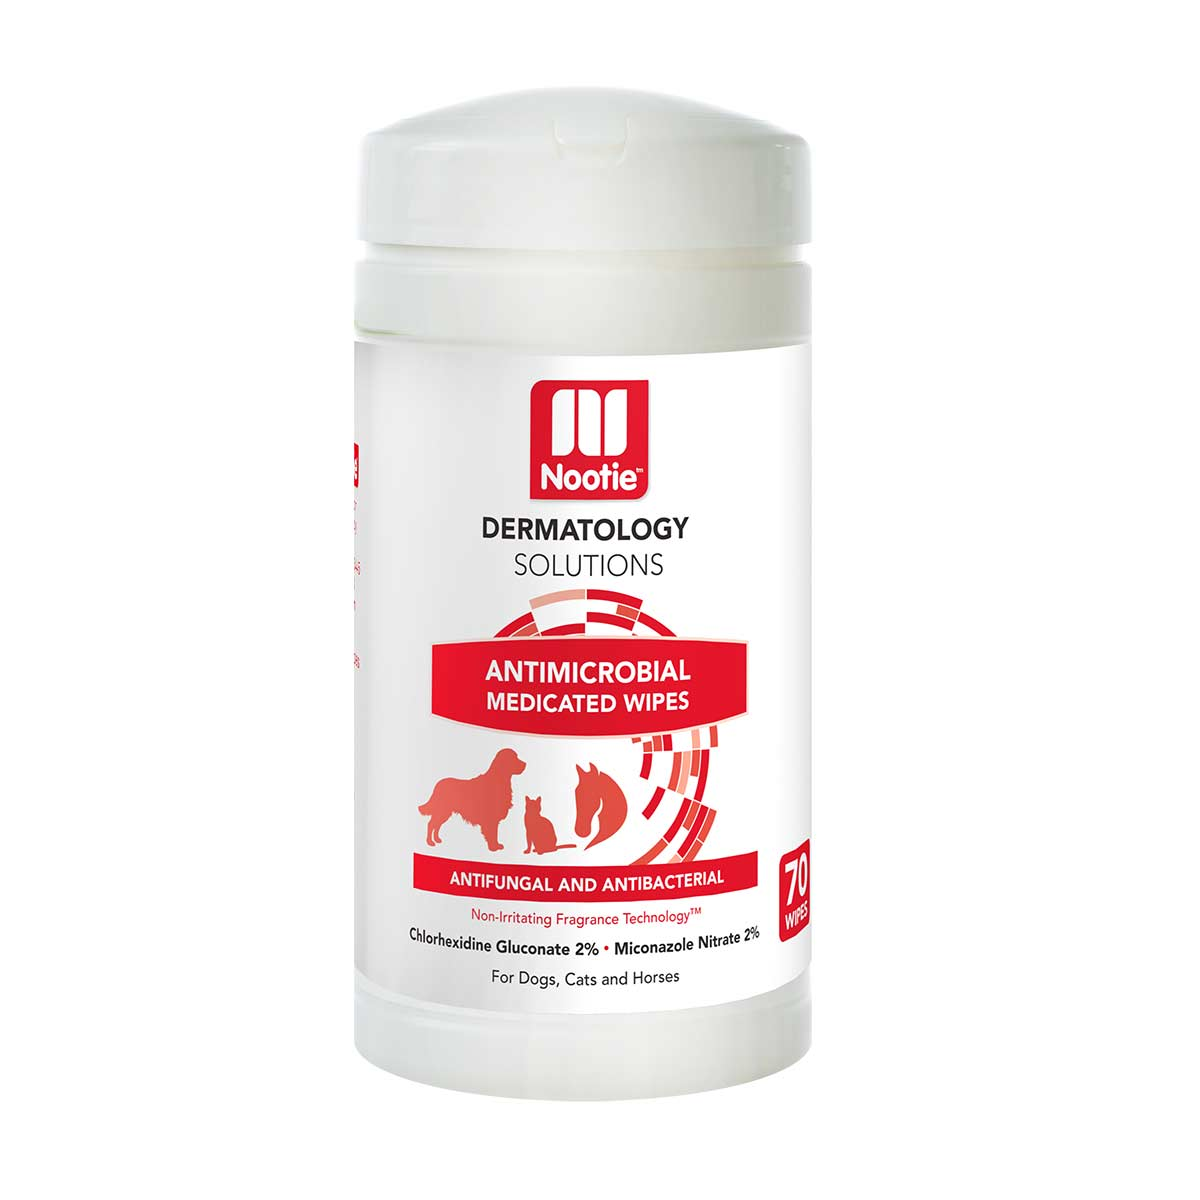 70 Count Nootie Medicated Antimicrobial Wipes for Dogs available at Ryan's Pet Supplies